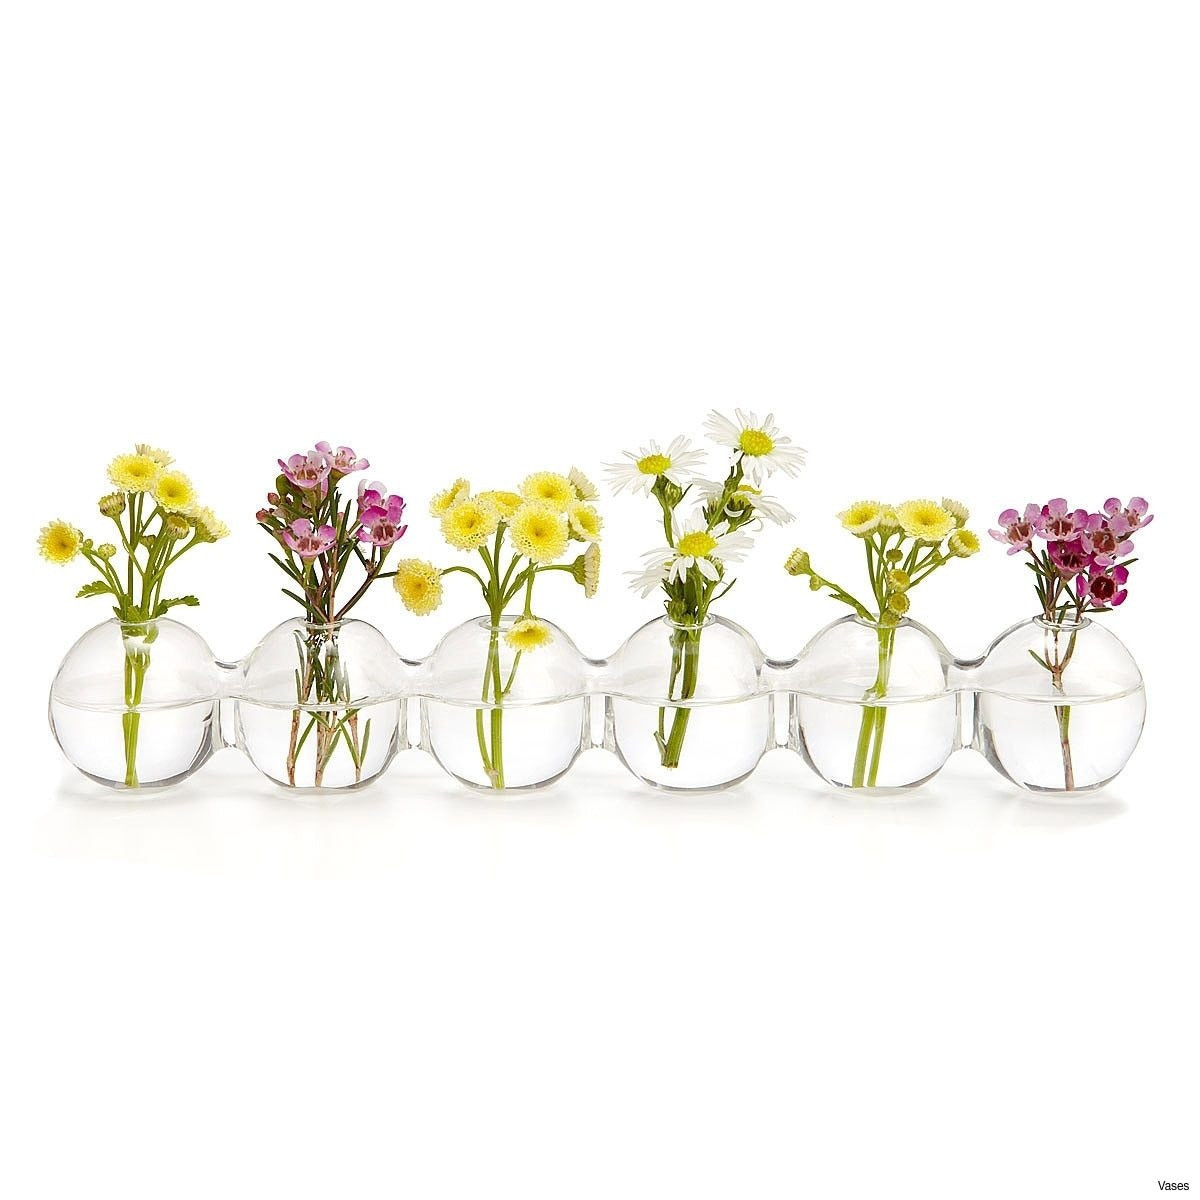 miniature glass bud vases of bulk bud vase gallery bud vase in 28case 29 glass 29h vases small pertaining to bud vase in 28case 29 glass 29h vases small bulk case i 0d scheme